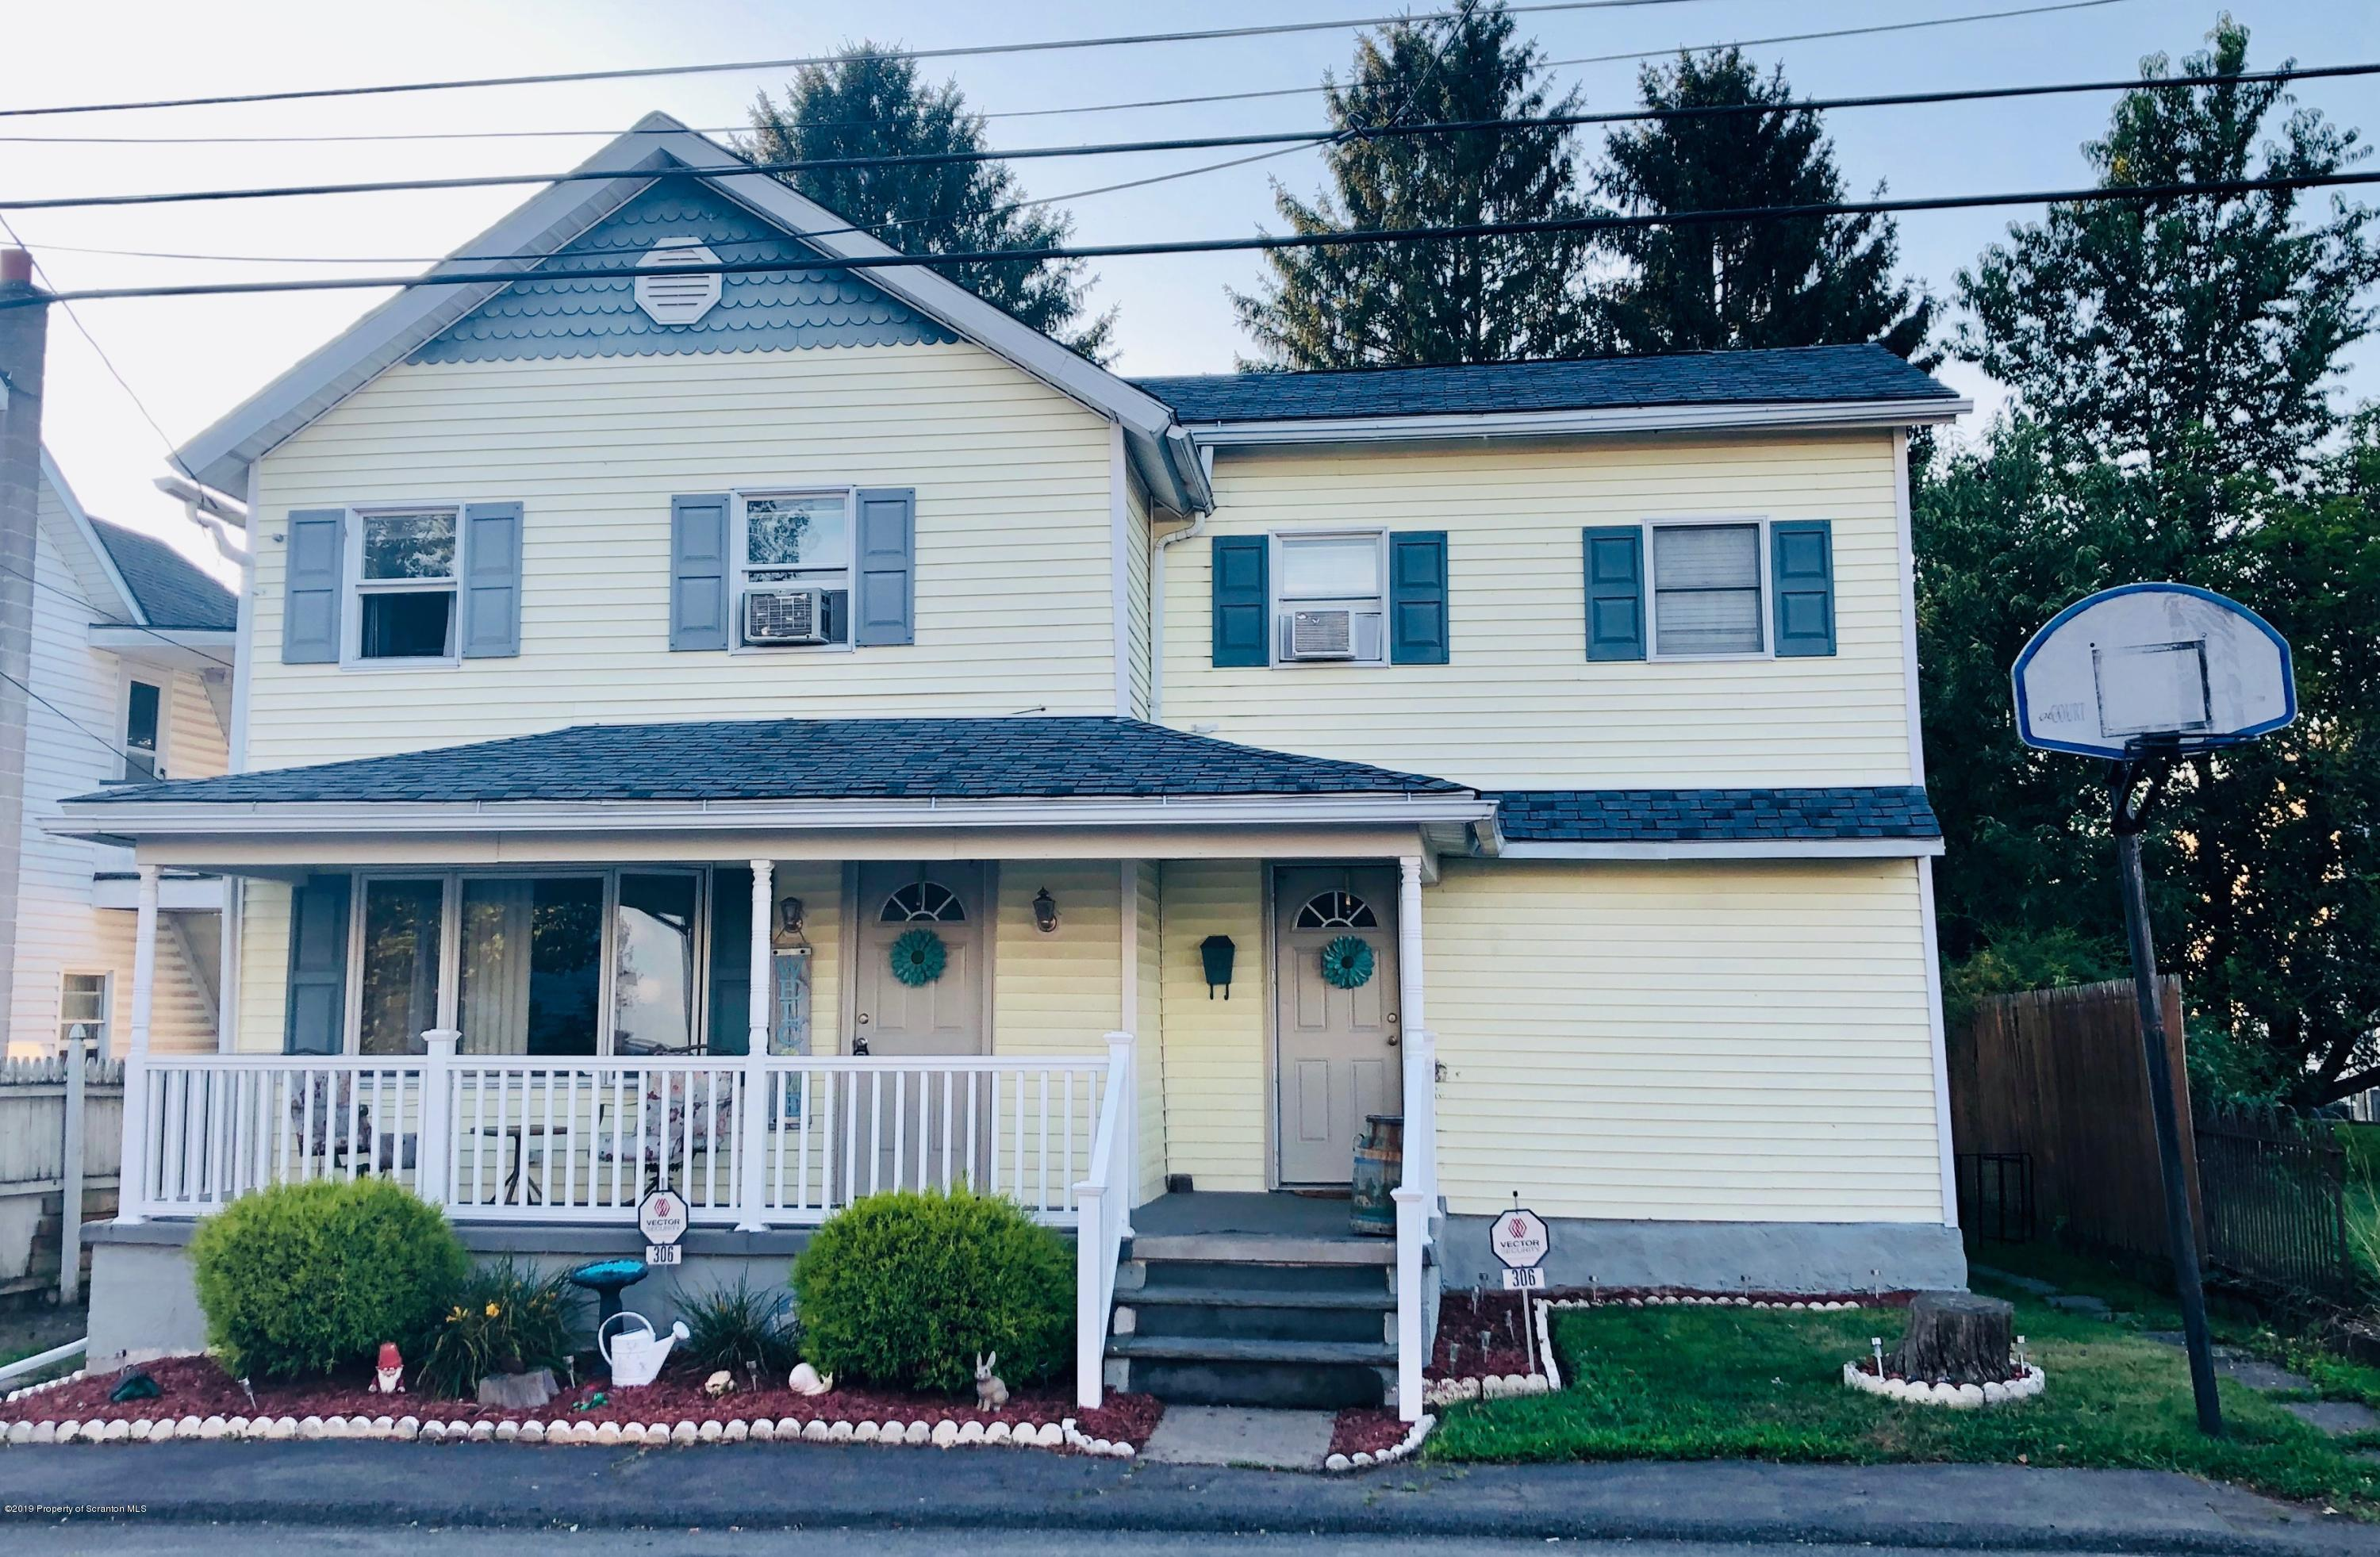 306 Powell Ave, Jessup, Pennsylvania 18434, 4 Bedrooms Bedrooms, 7 Rooms Rooms,2 BathroomsBathrooms,Single Family,For Sale,Powell,19-3674